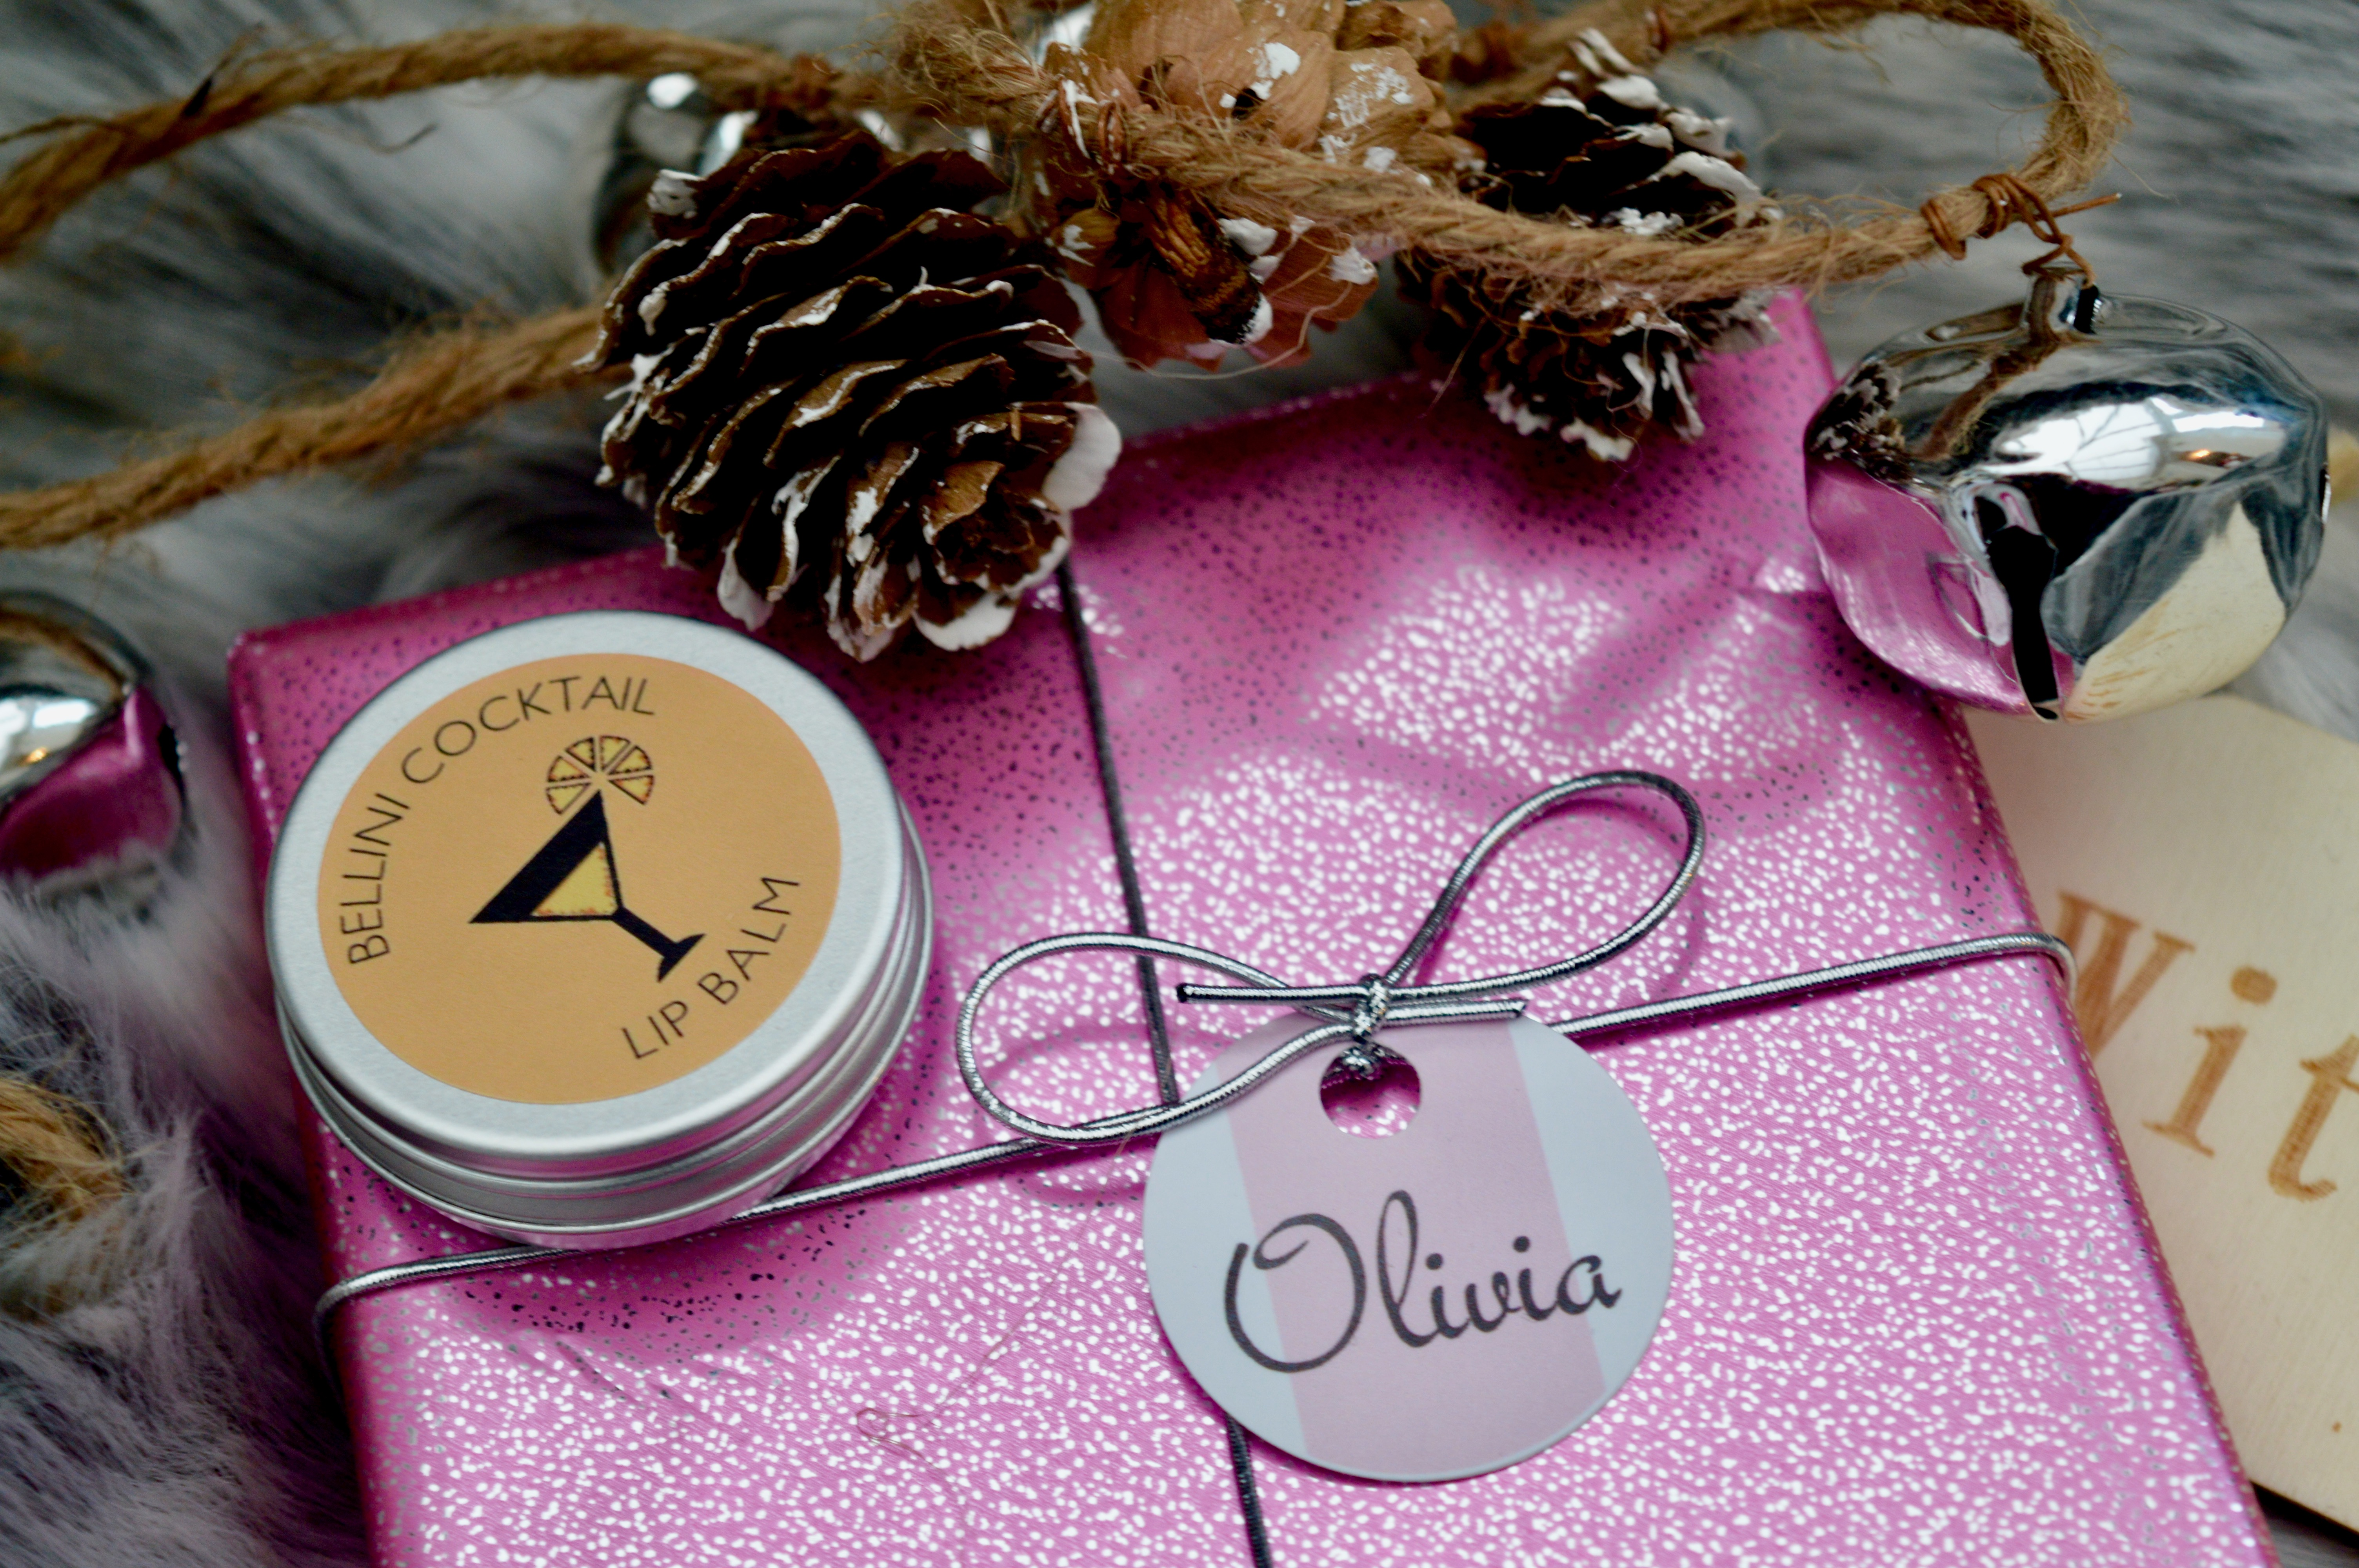 Shea Luxury Butter Lip Balm Cocktail Flavour Gift Set | What to buy teenagers | Christmas Gift Guide | Elle Blonde Luxury Lifestyle Destination Blog